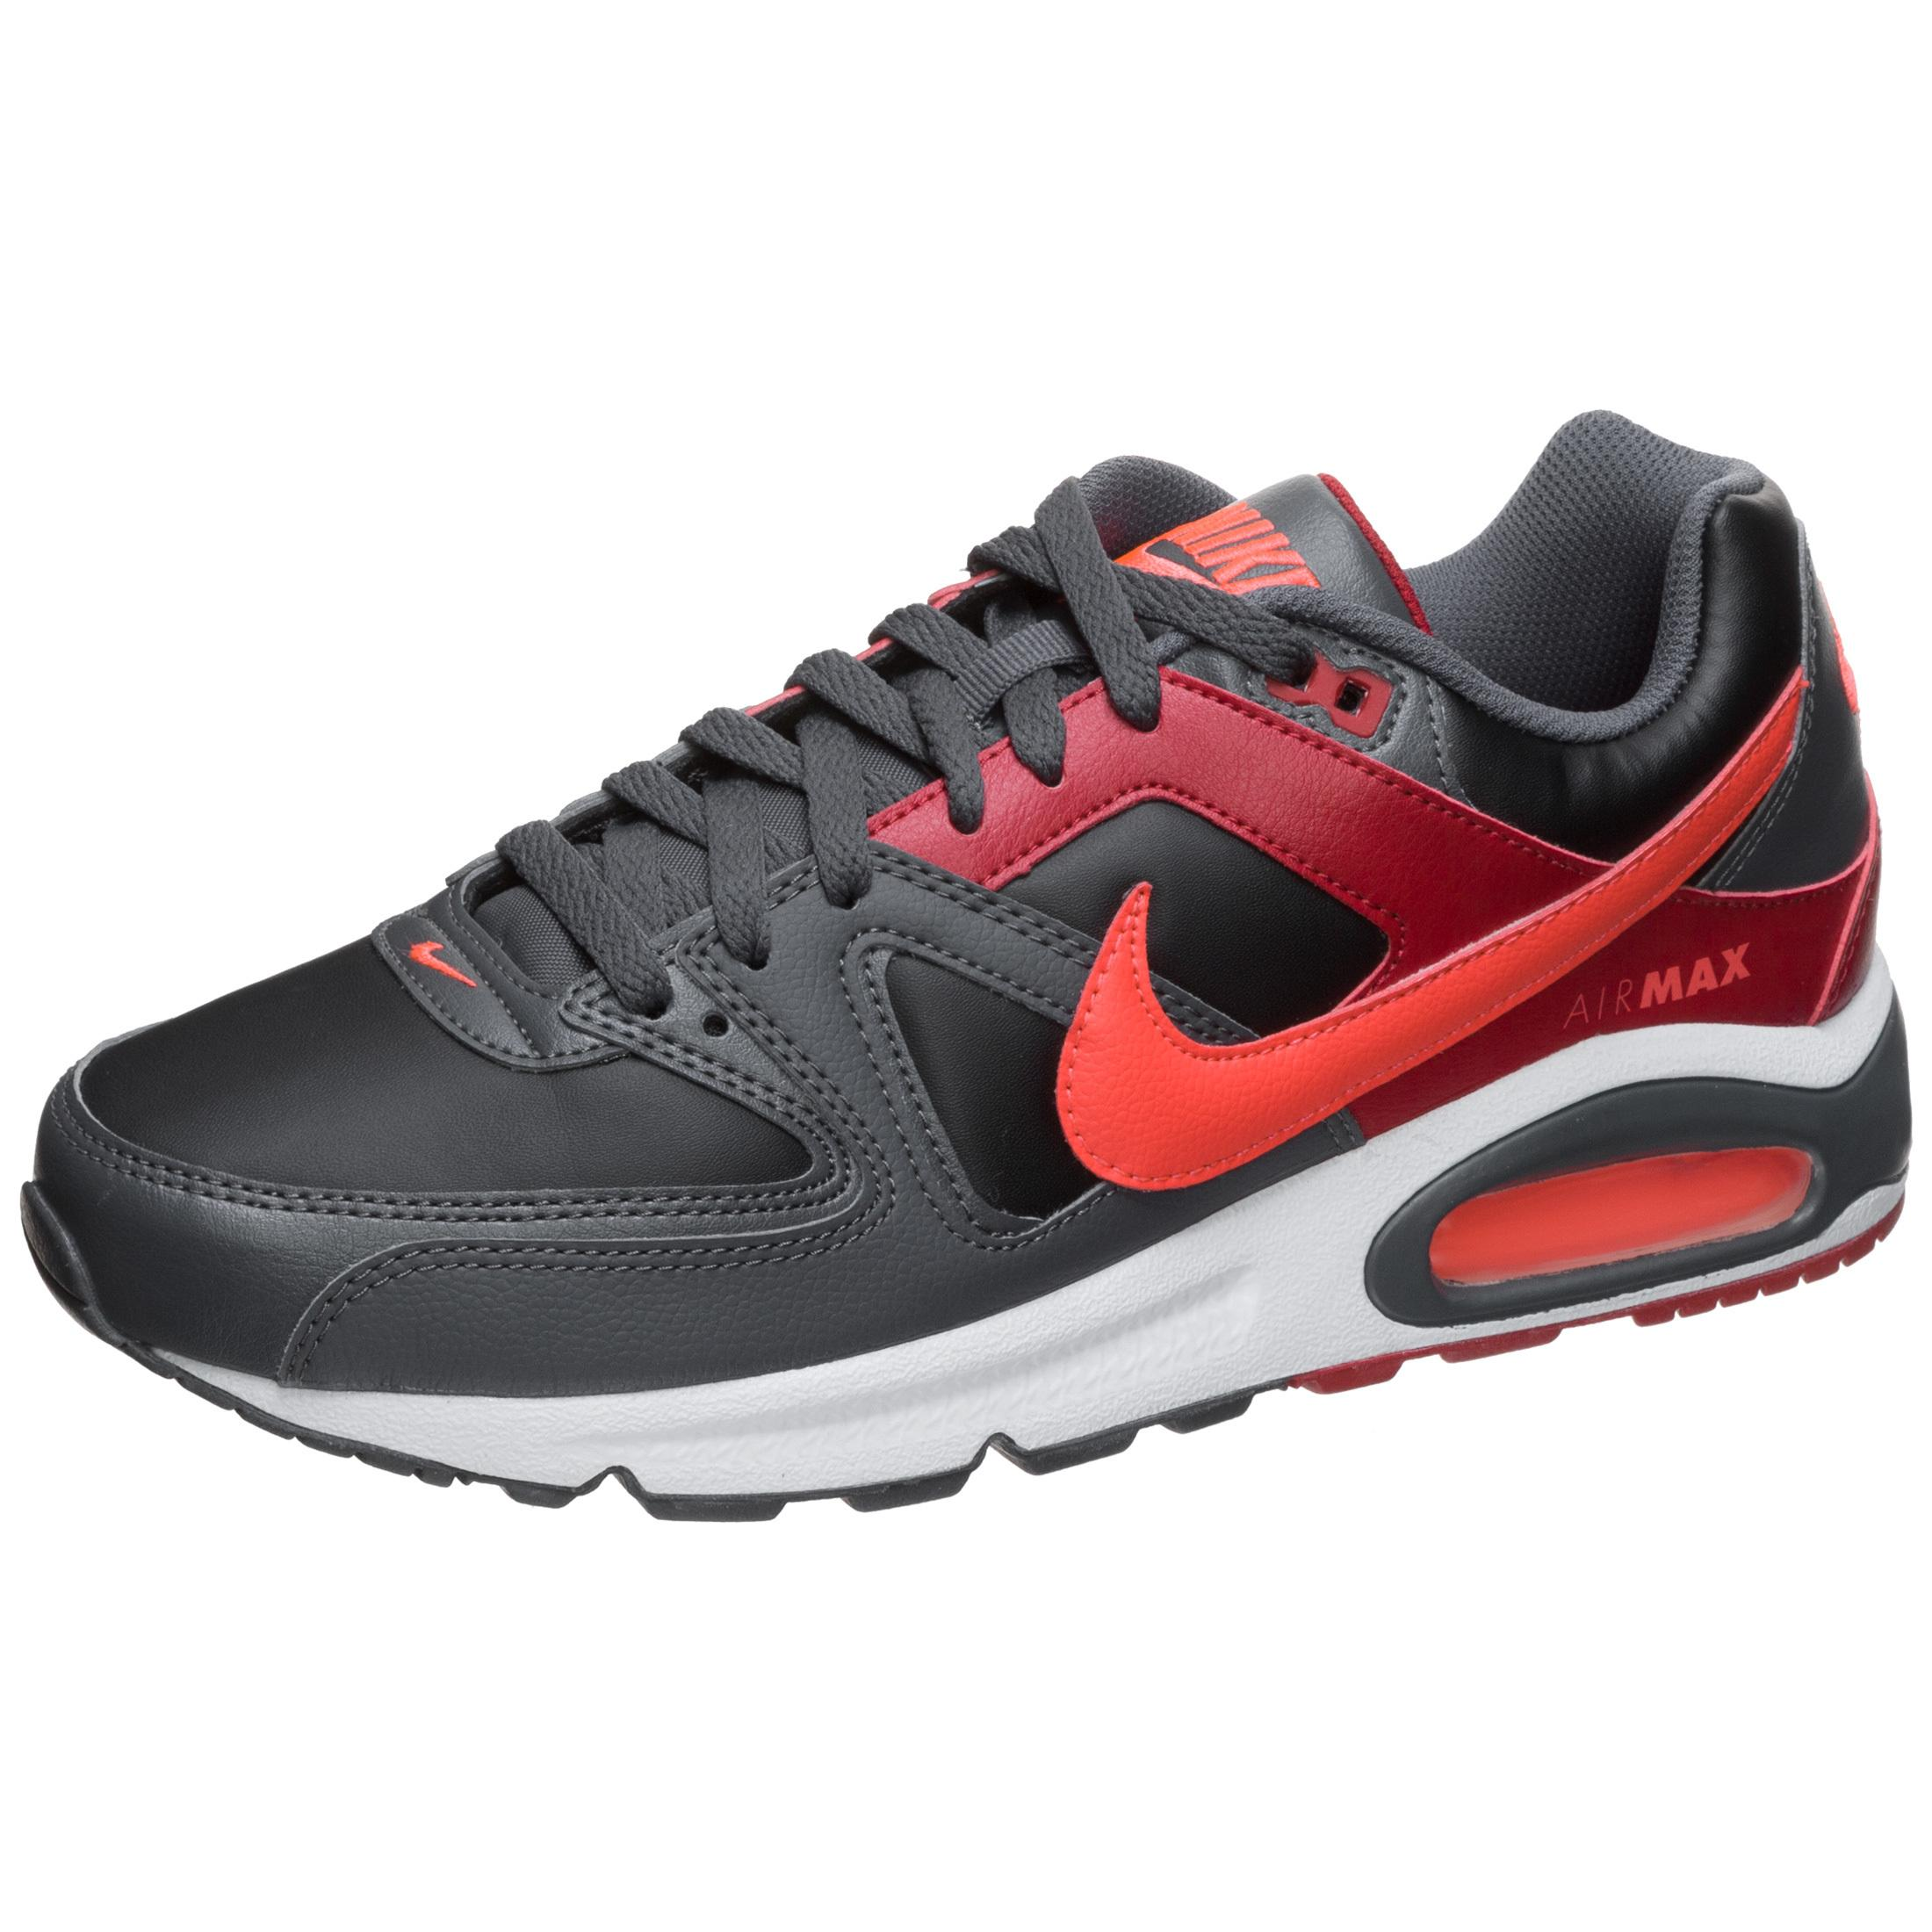 nike air max command rot schwarz